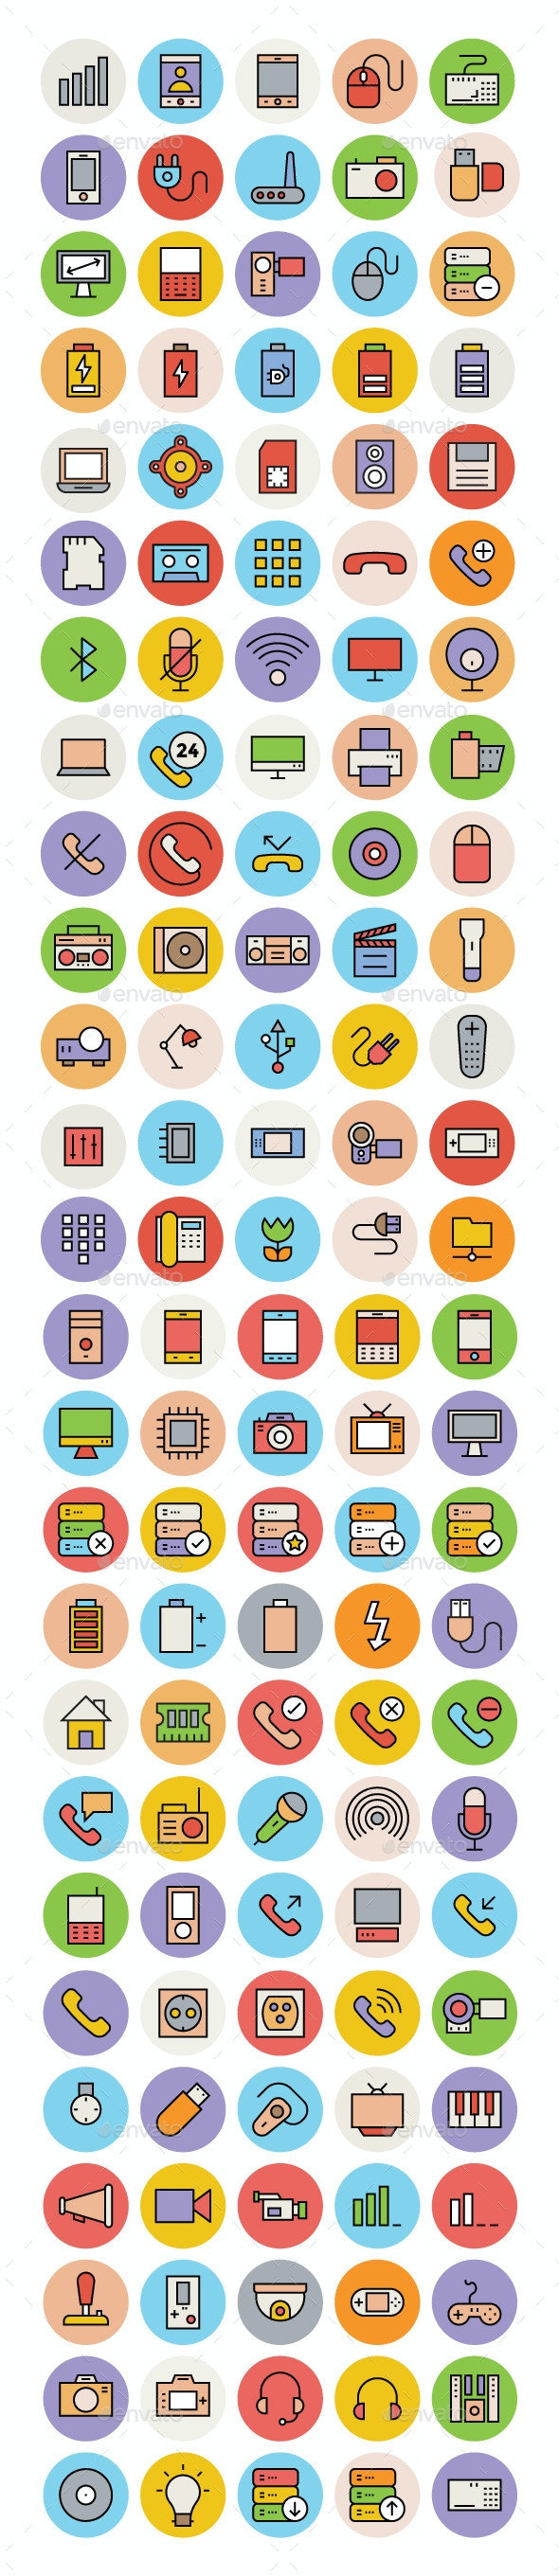 125+ Hardware and Devices Vector Icons - Objects Icons